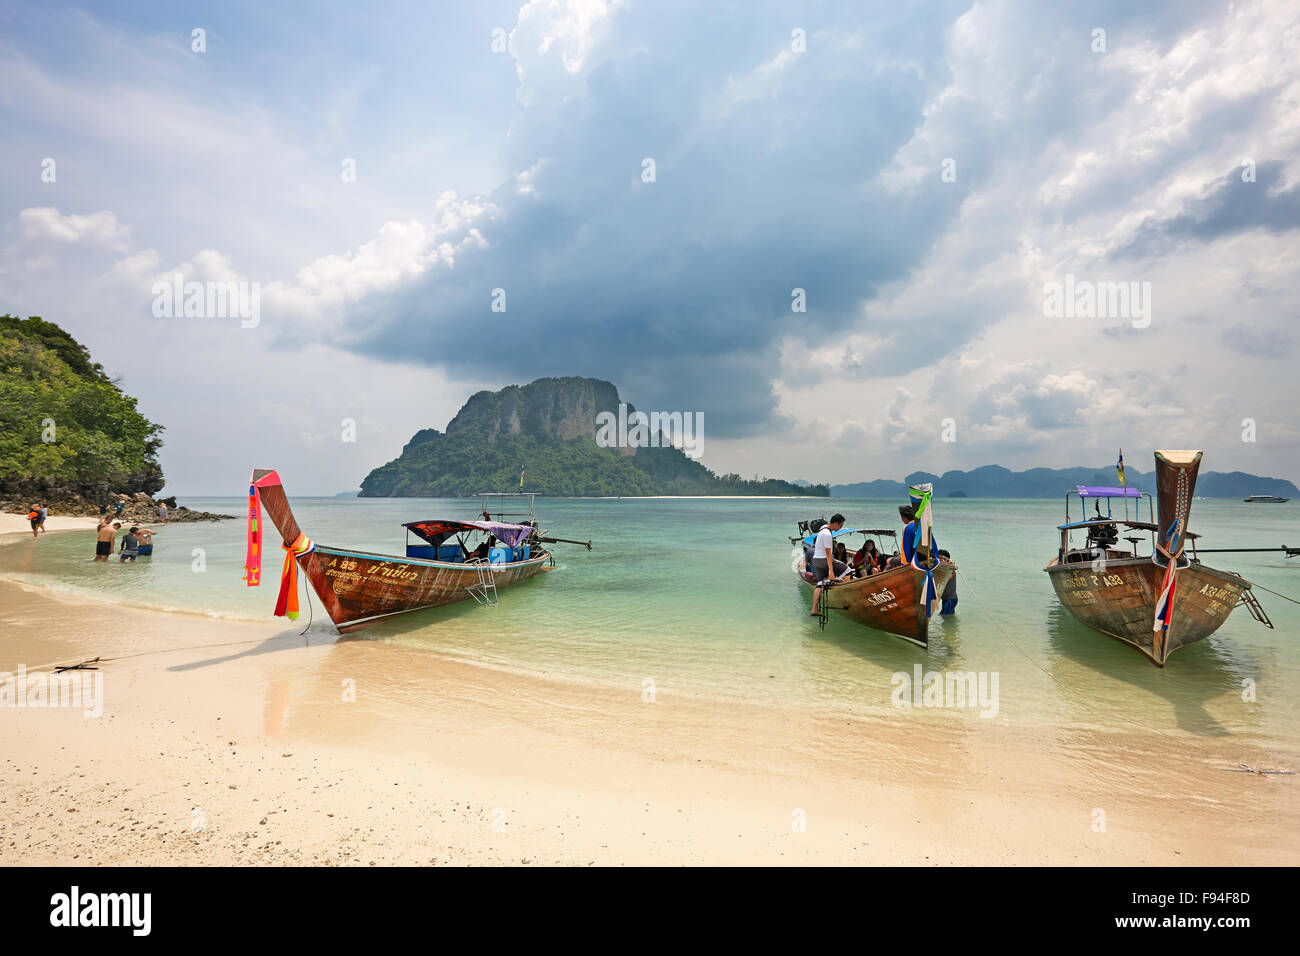 Beach on Tup Island (also known as Tub Island, Koh Tap or Koh Thap). Krabi Province, Thailand. - Stock Image